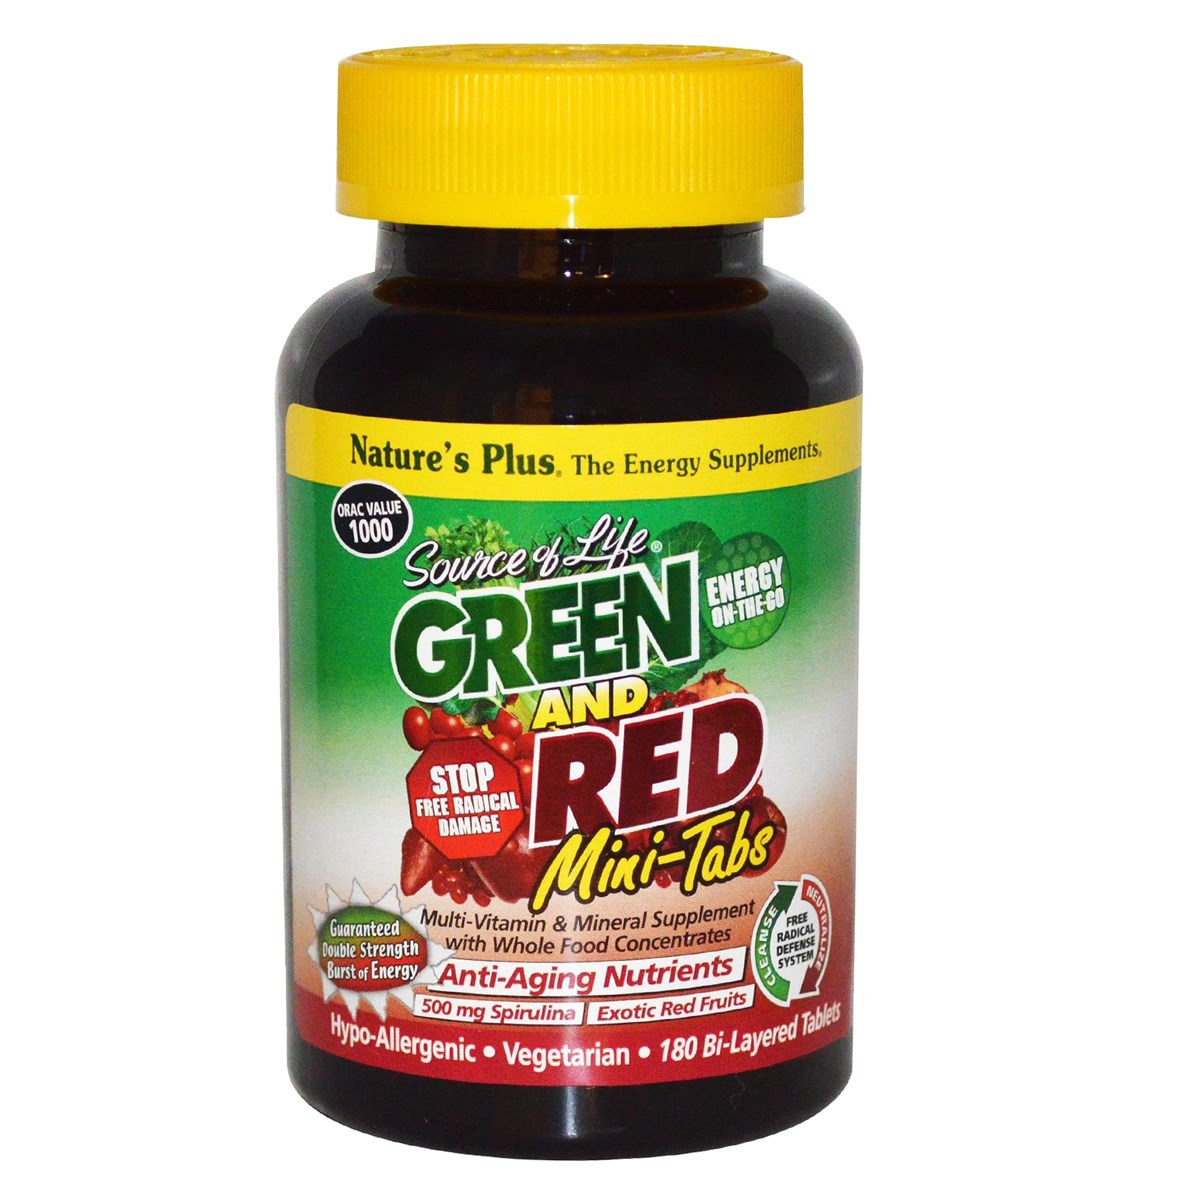 Natures Plus Source of Life GREEN AND RED Bi-Layered Mini-Tabs